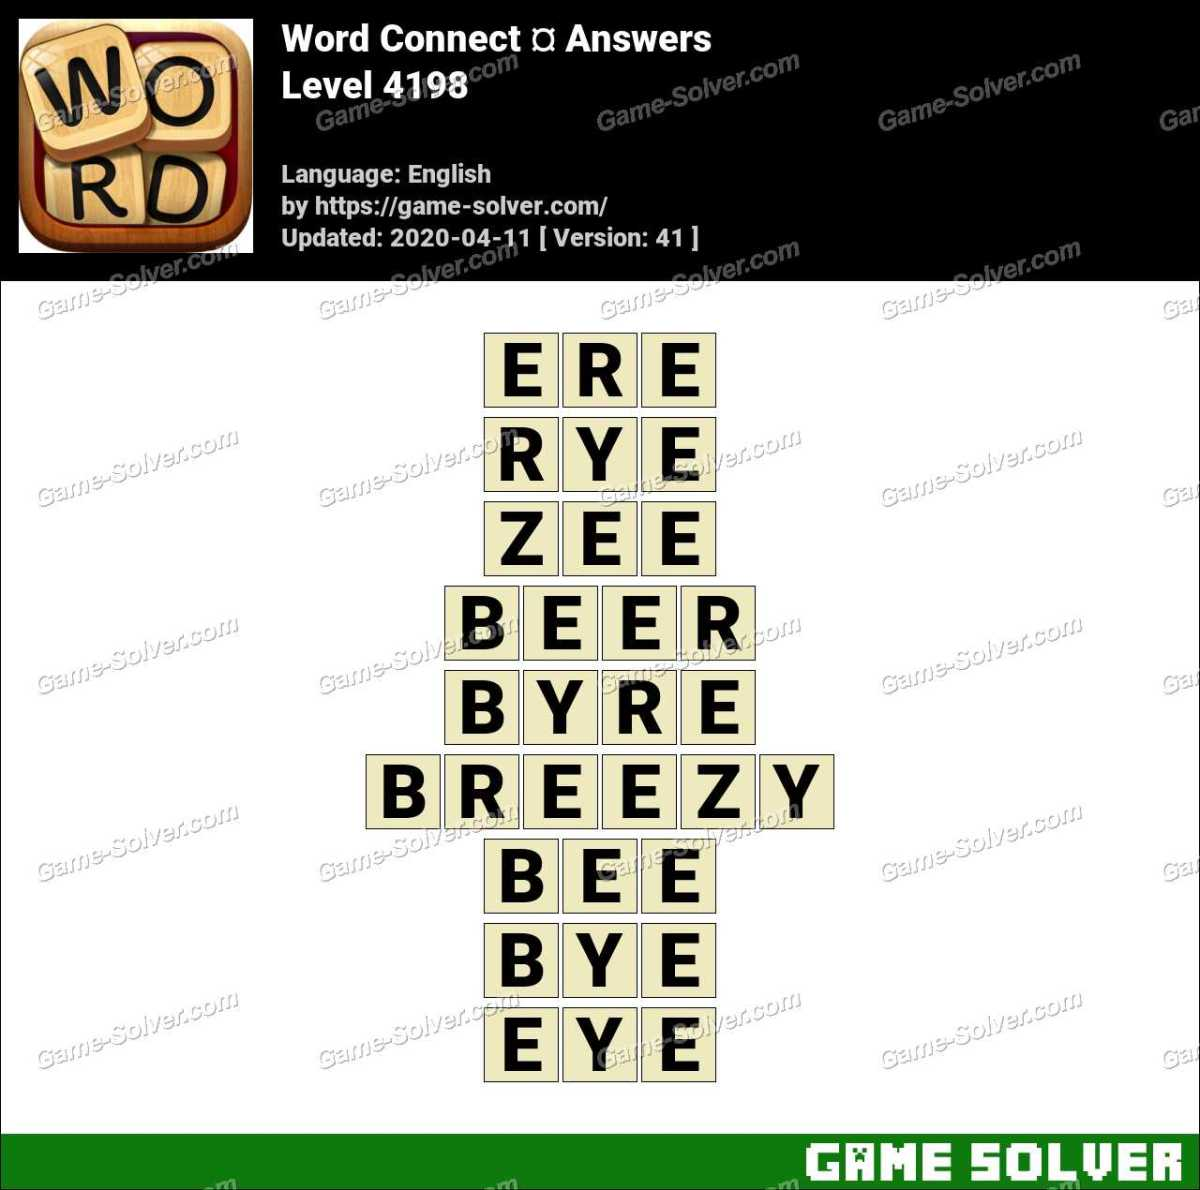 Word Connect Level 4198 Answers